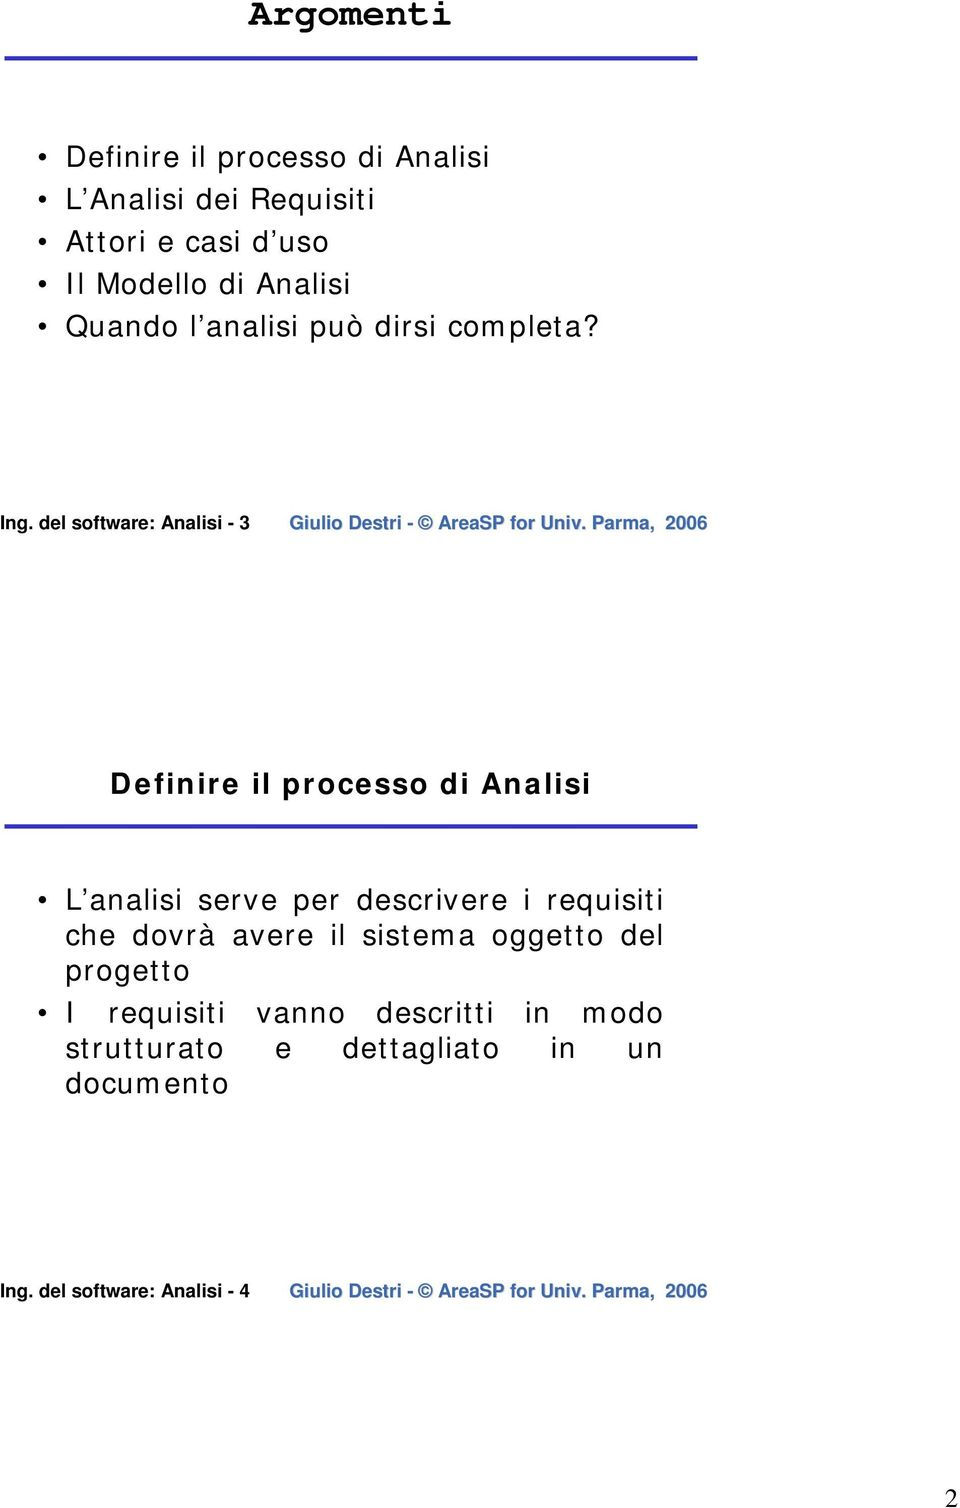 del software: Analisi - 3 Definire il processo di Analisi L analisi serve per descrivere i requisiti